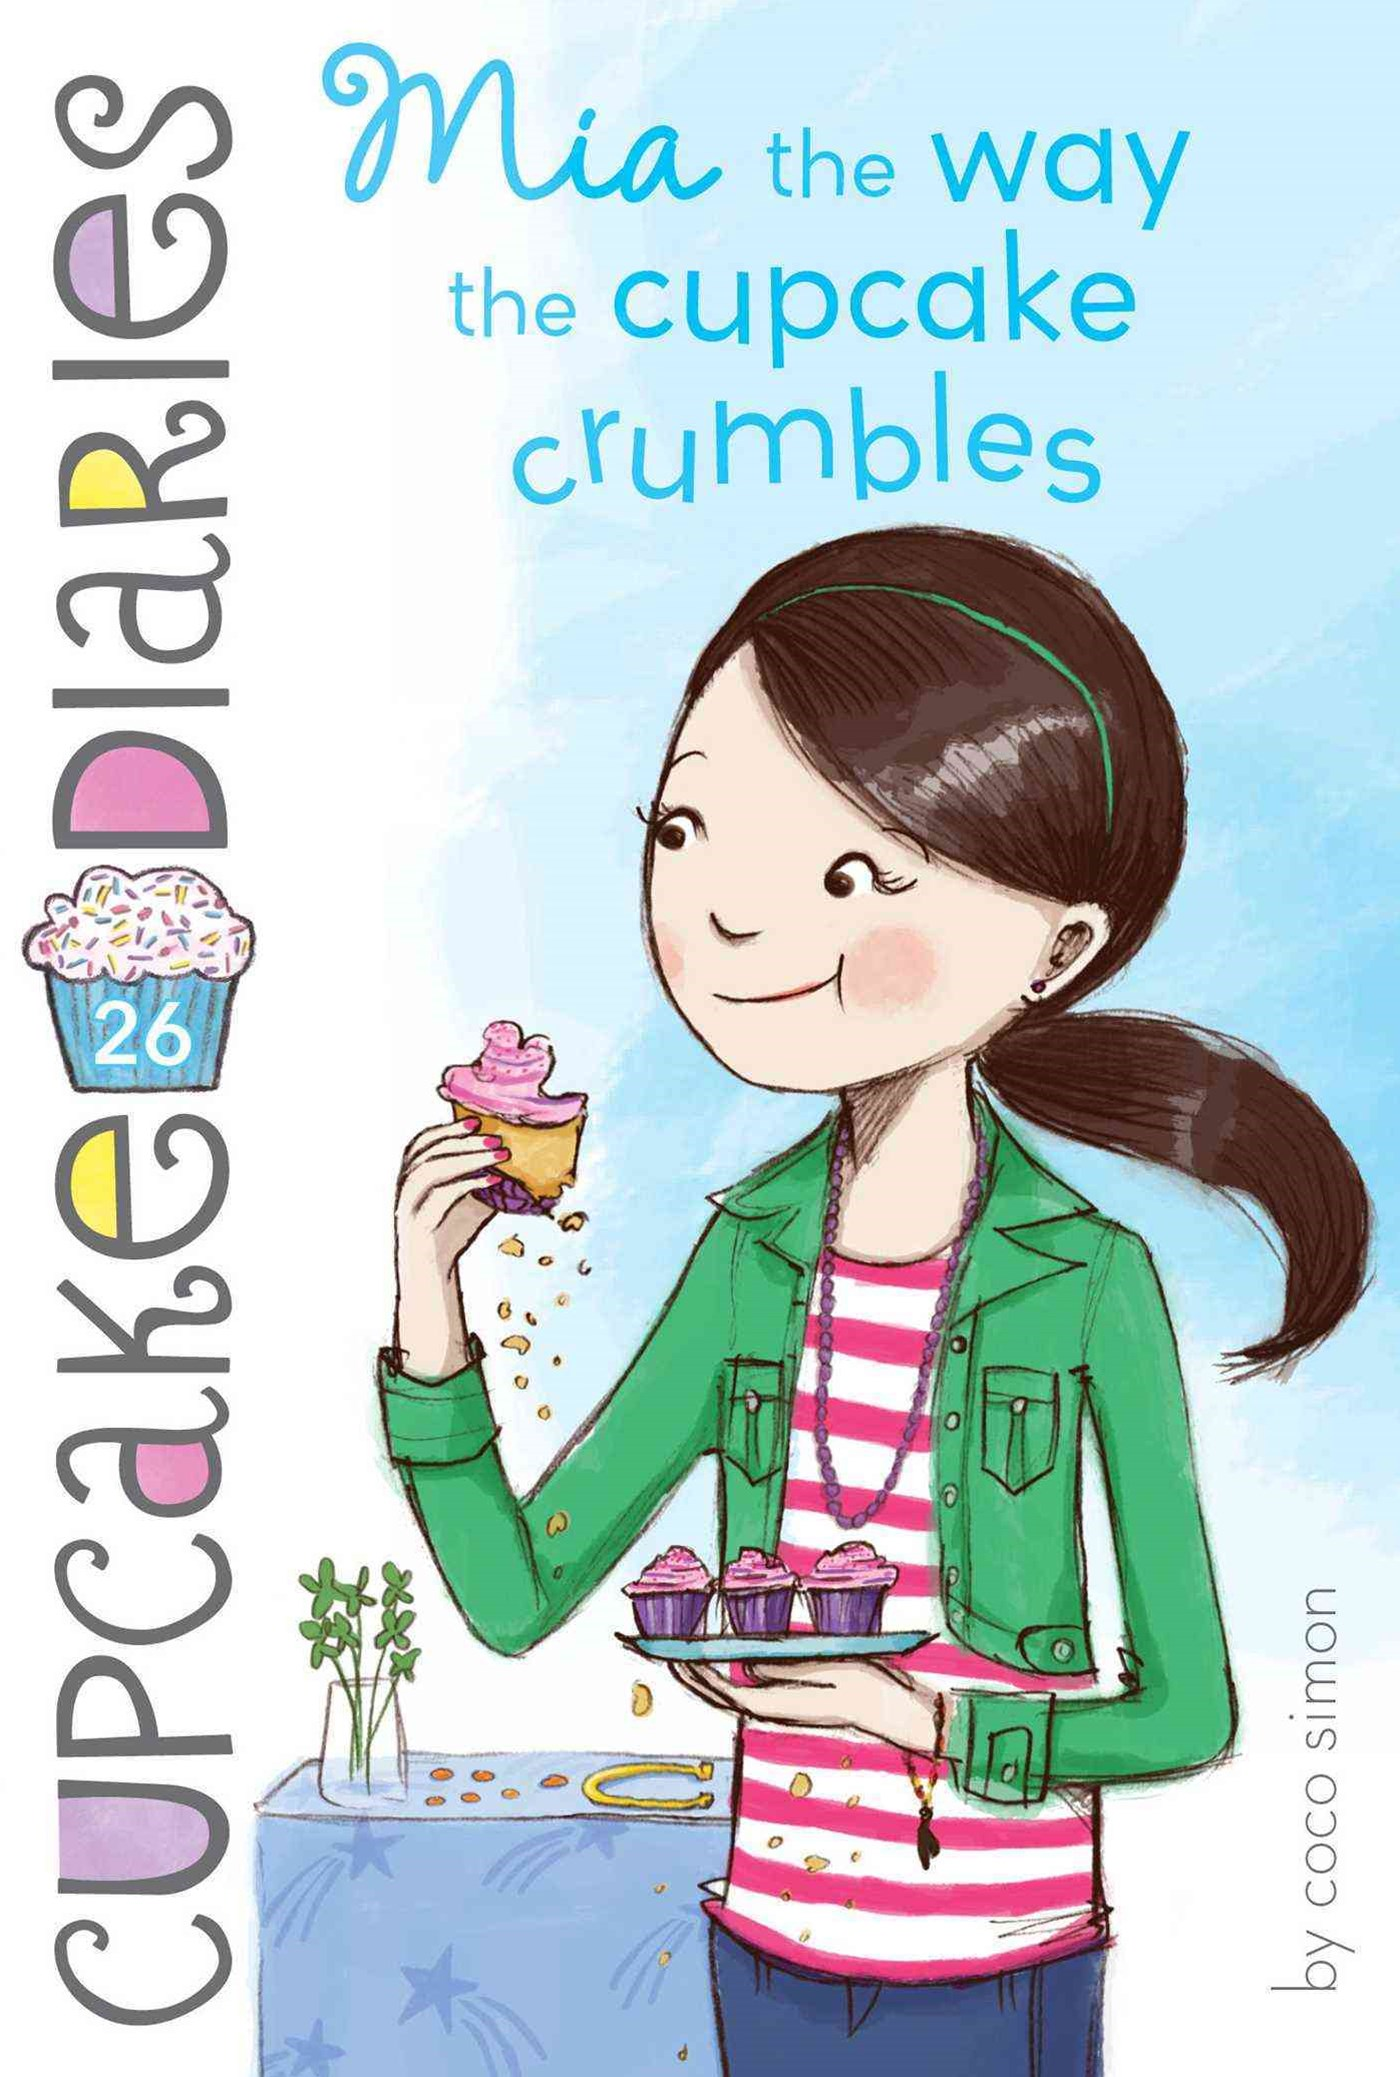 Cupcake Diaries #26: Mia the Way the Cupcake Crumbles